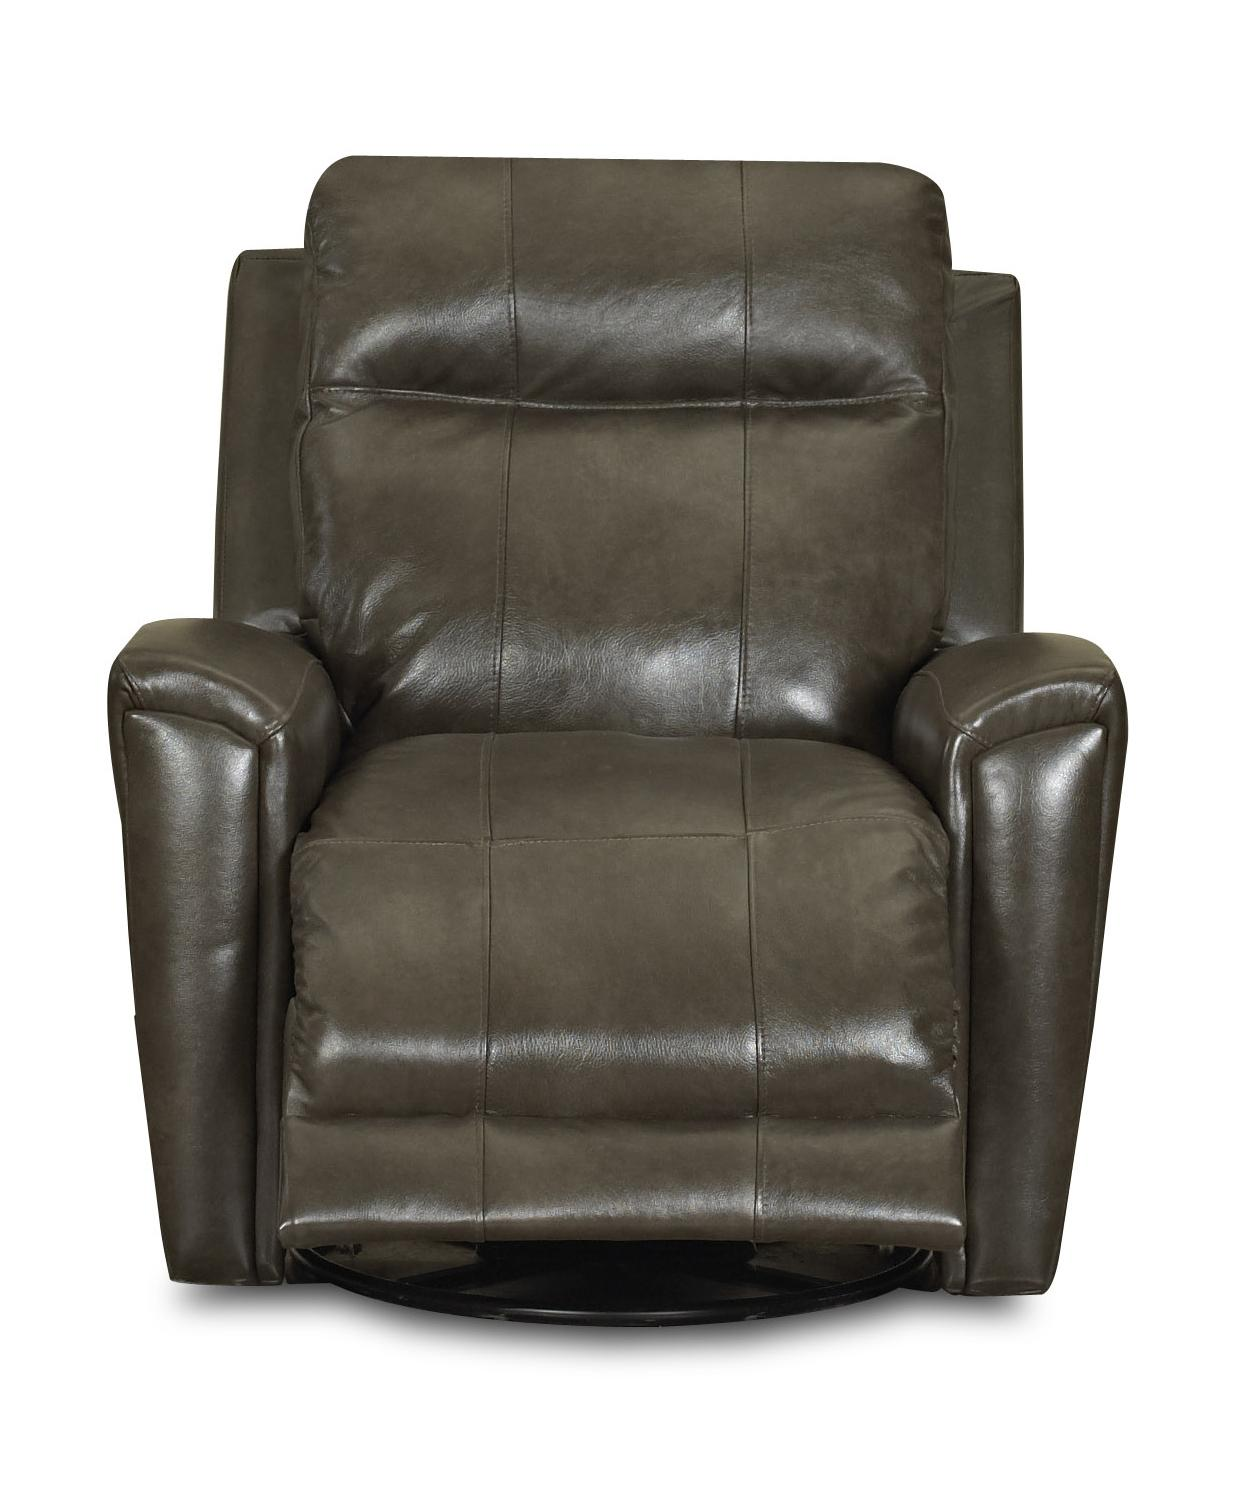 rocking reclining chair low folding transitional swivel by klaussner